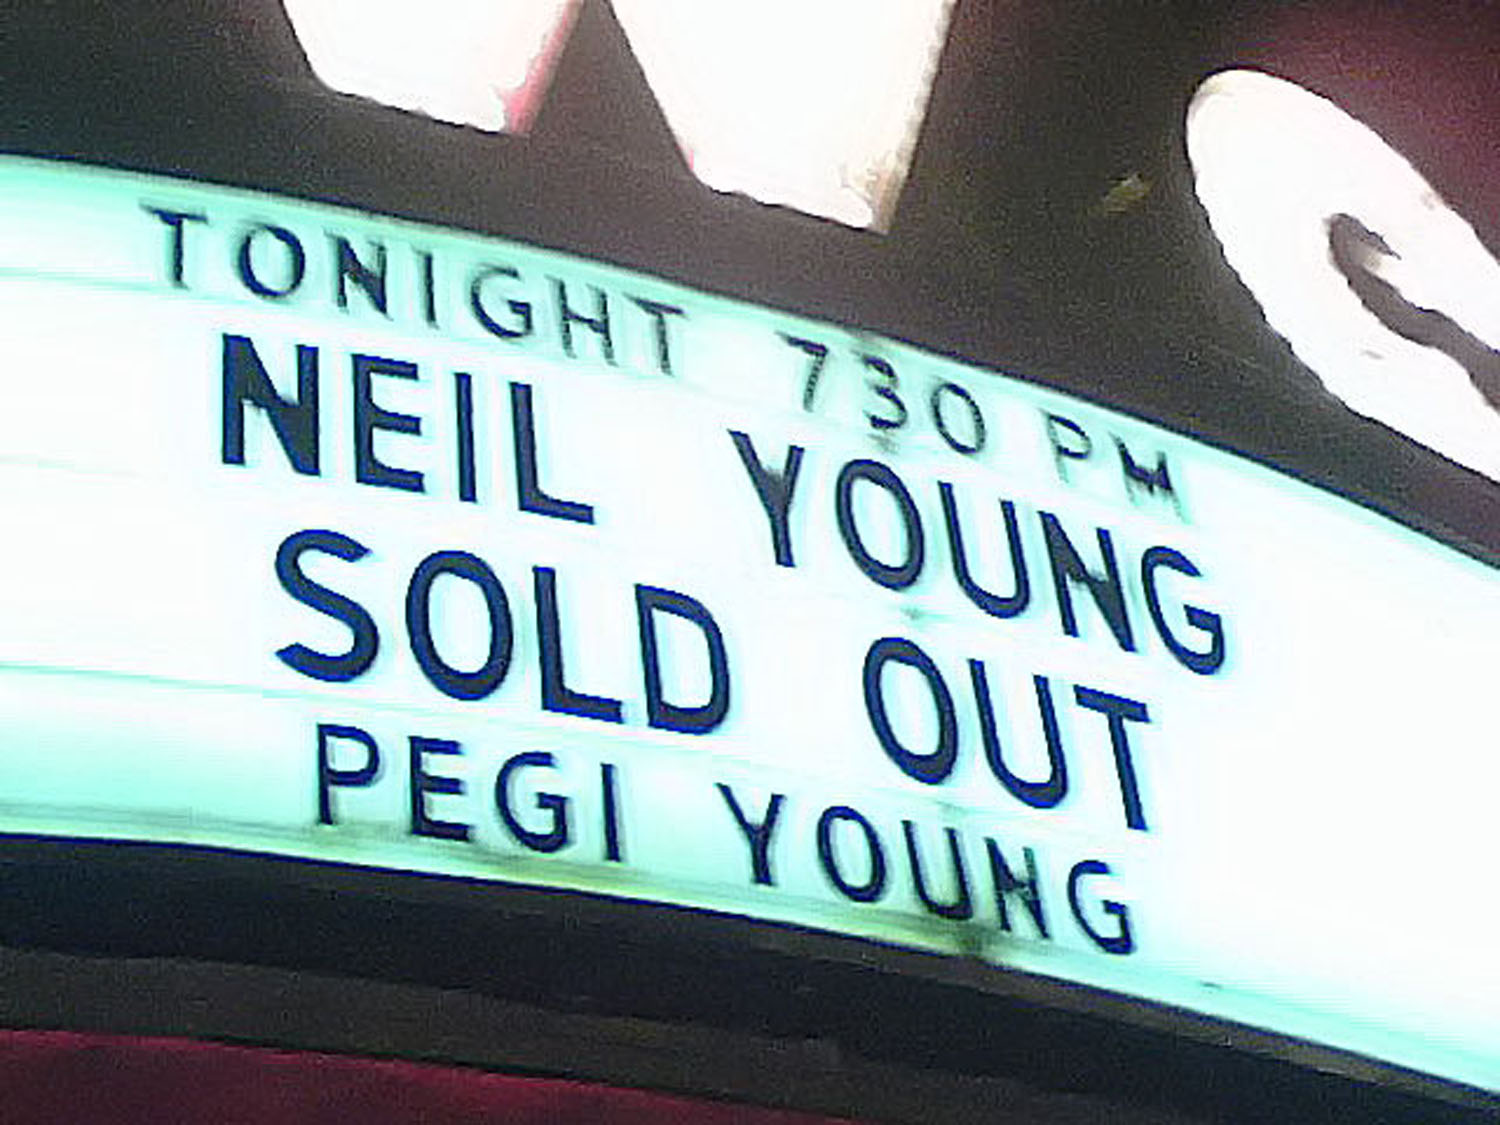 Neil & Pegi Young highlight a sold out show at the Tower Theatre.